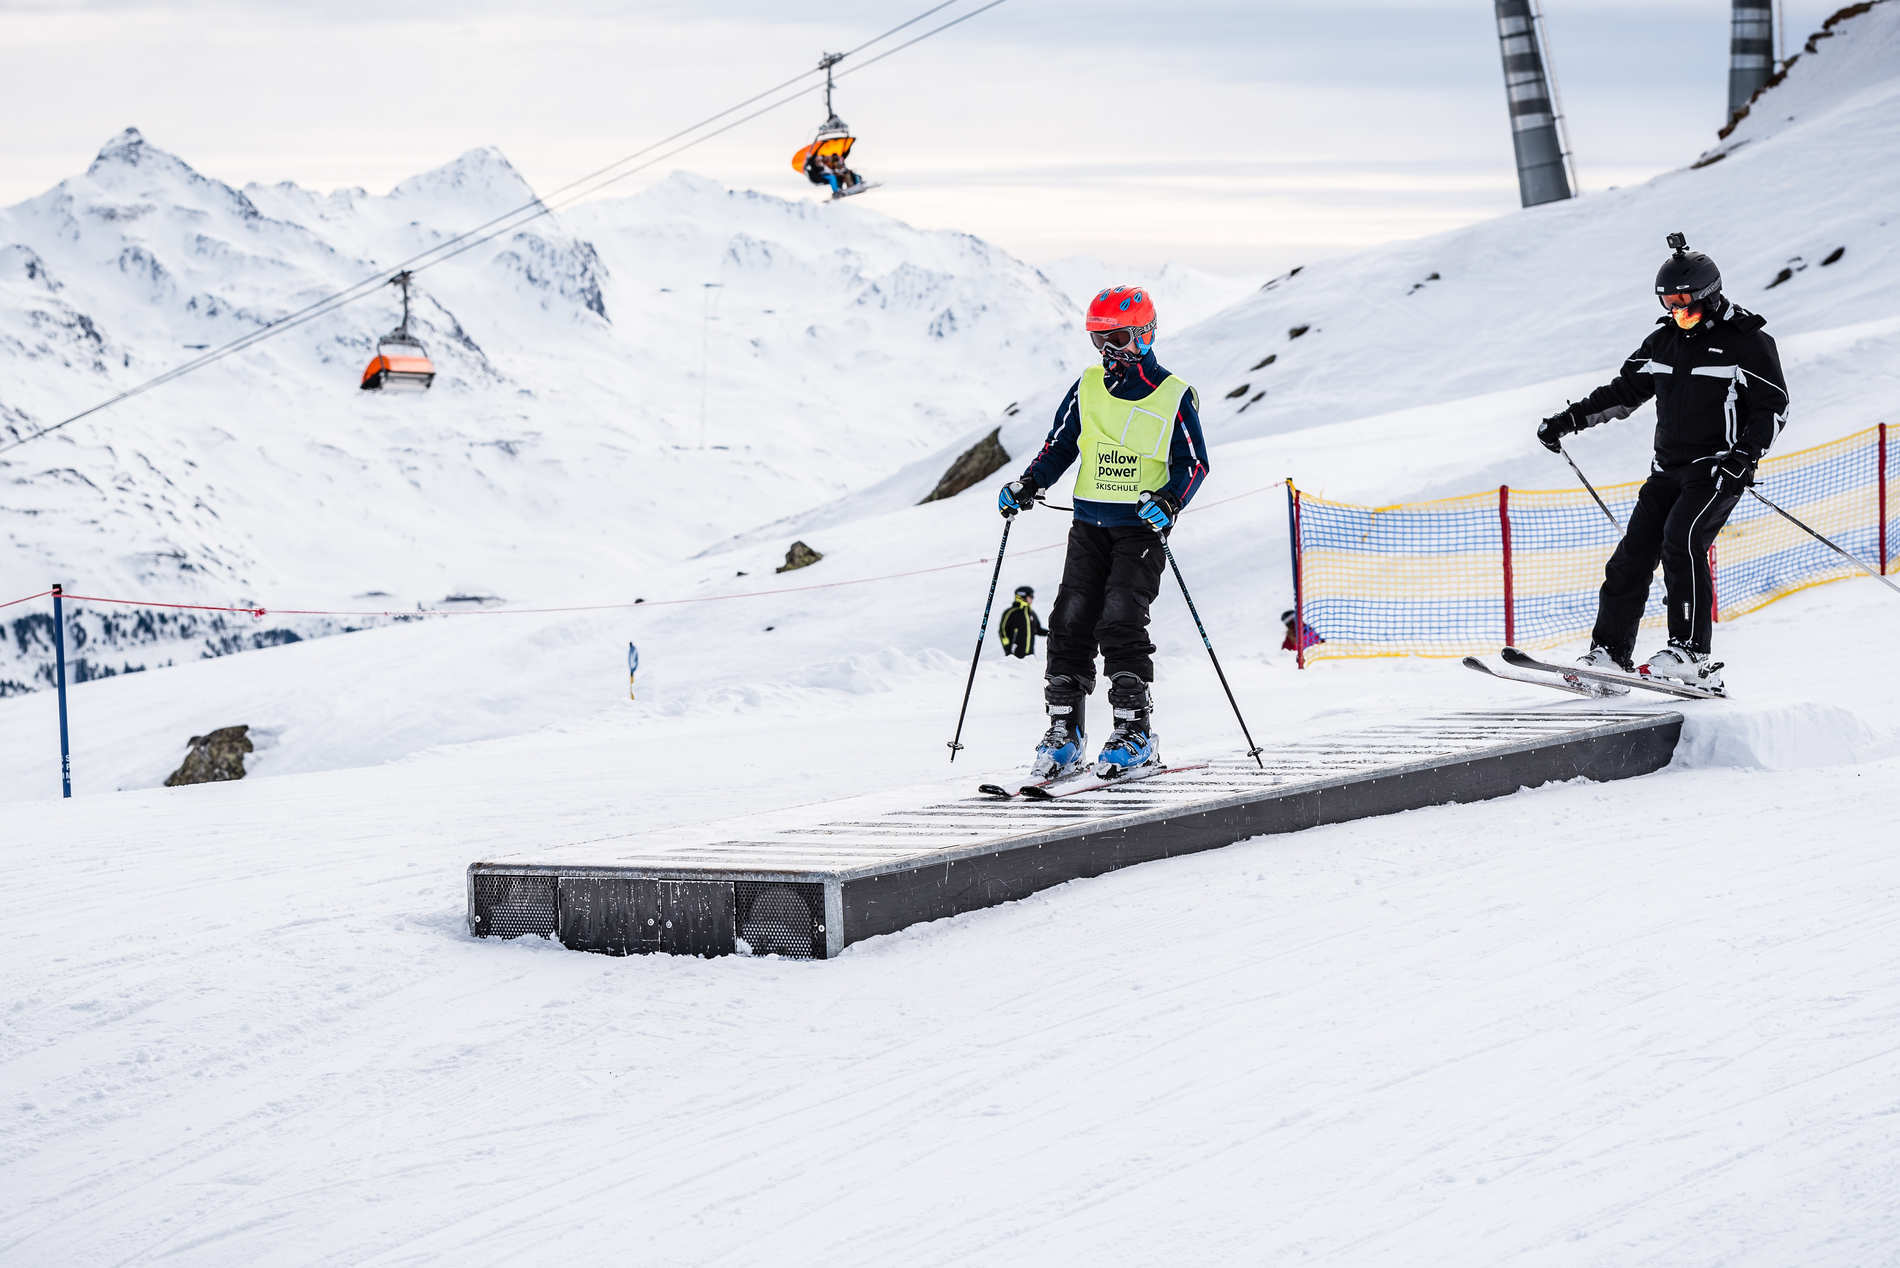 soelden 24 02 2019 action fs christian riefenberg qparks 1